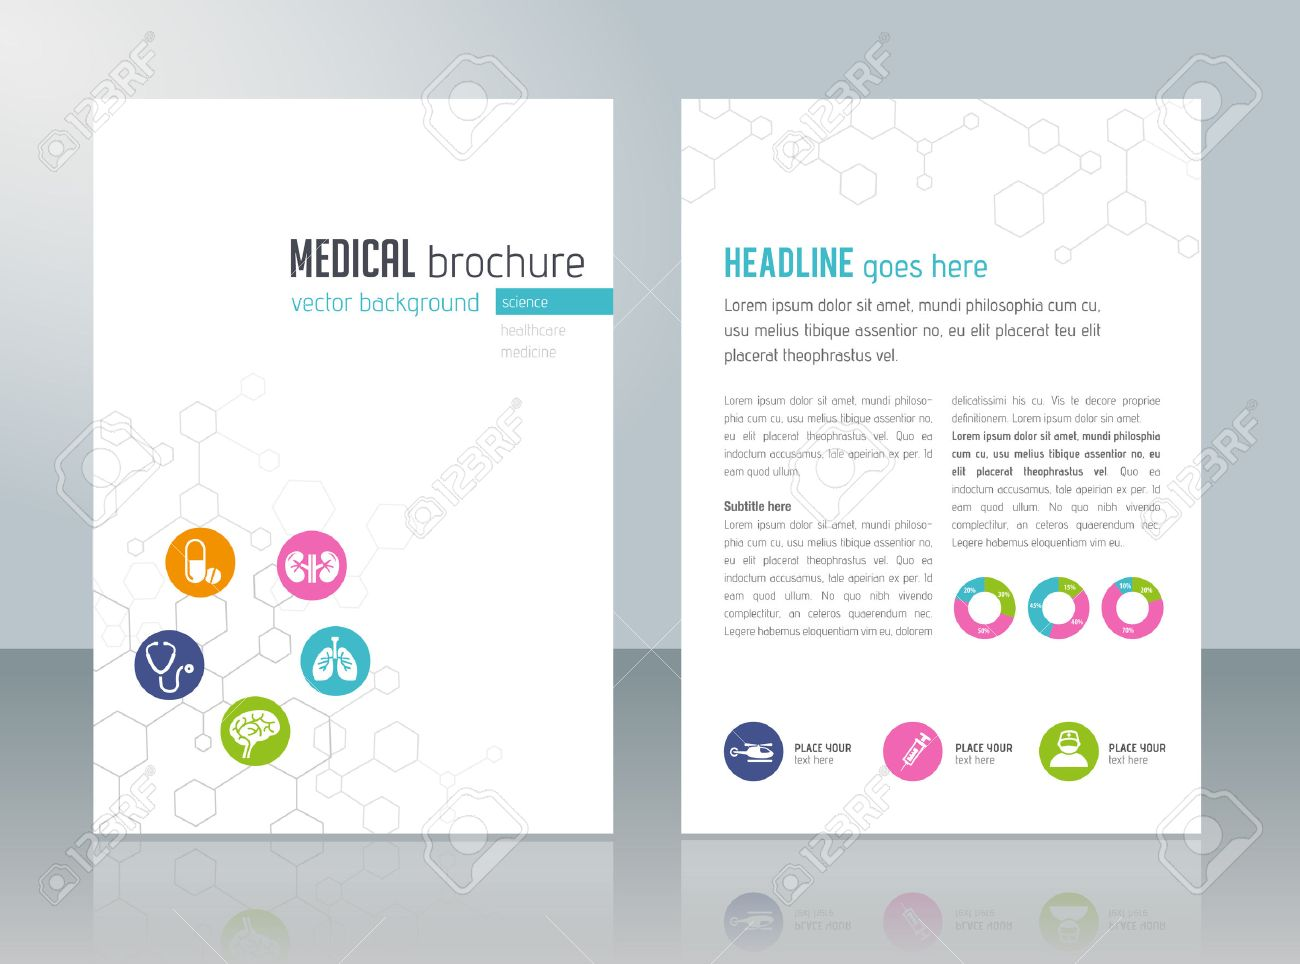 Brochure template - medical topics, healthcare, science, technology. - 50453712